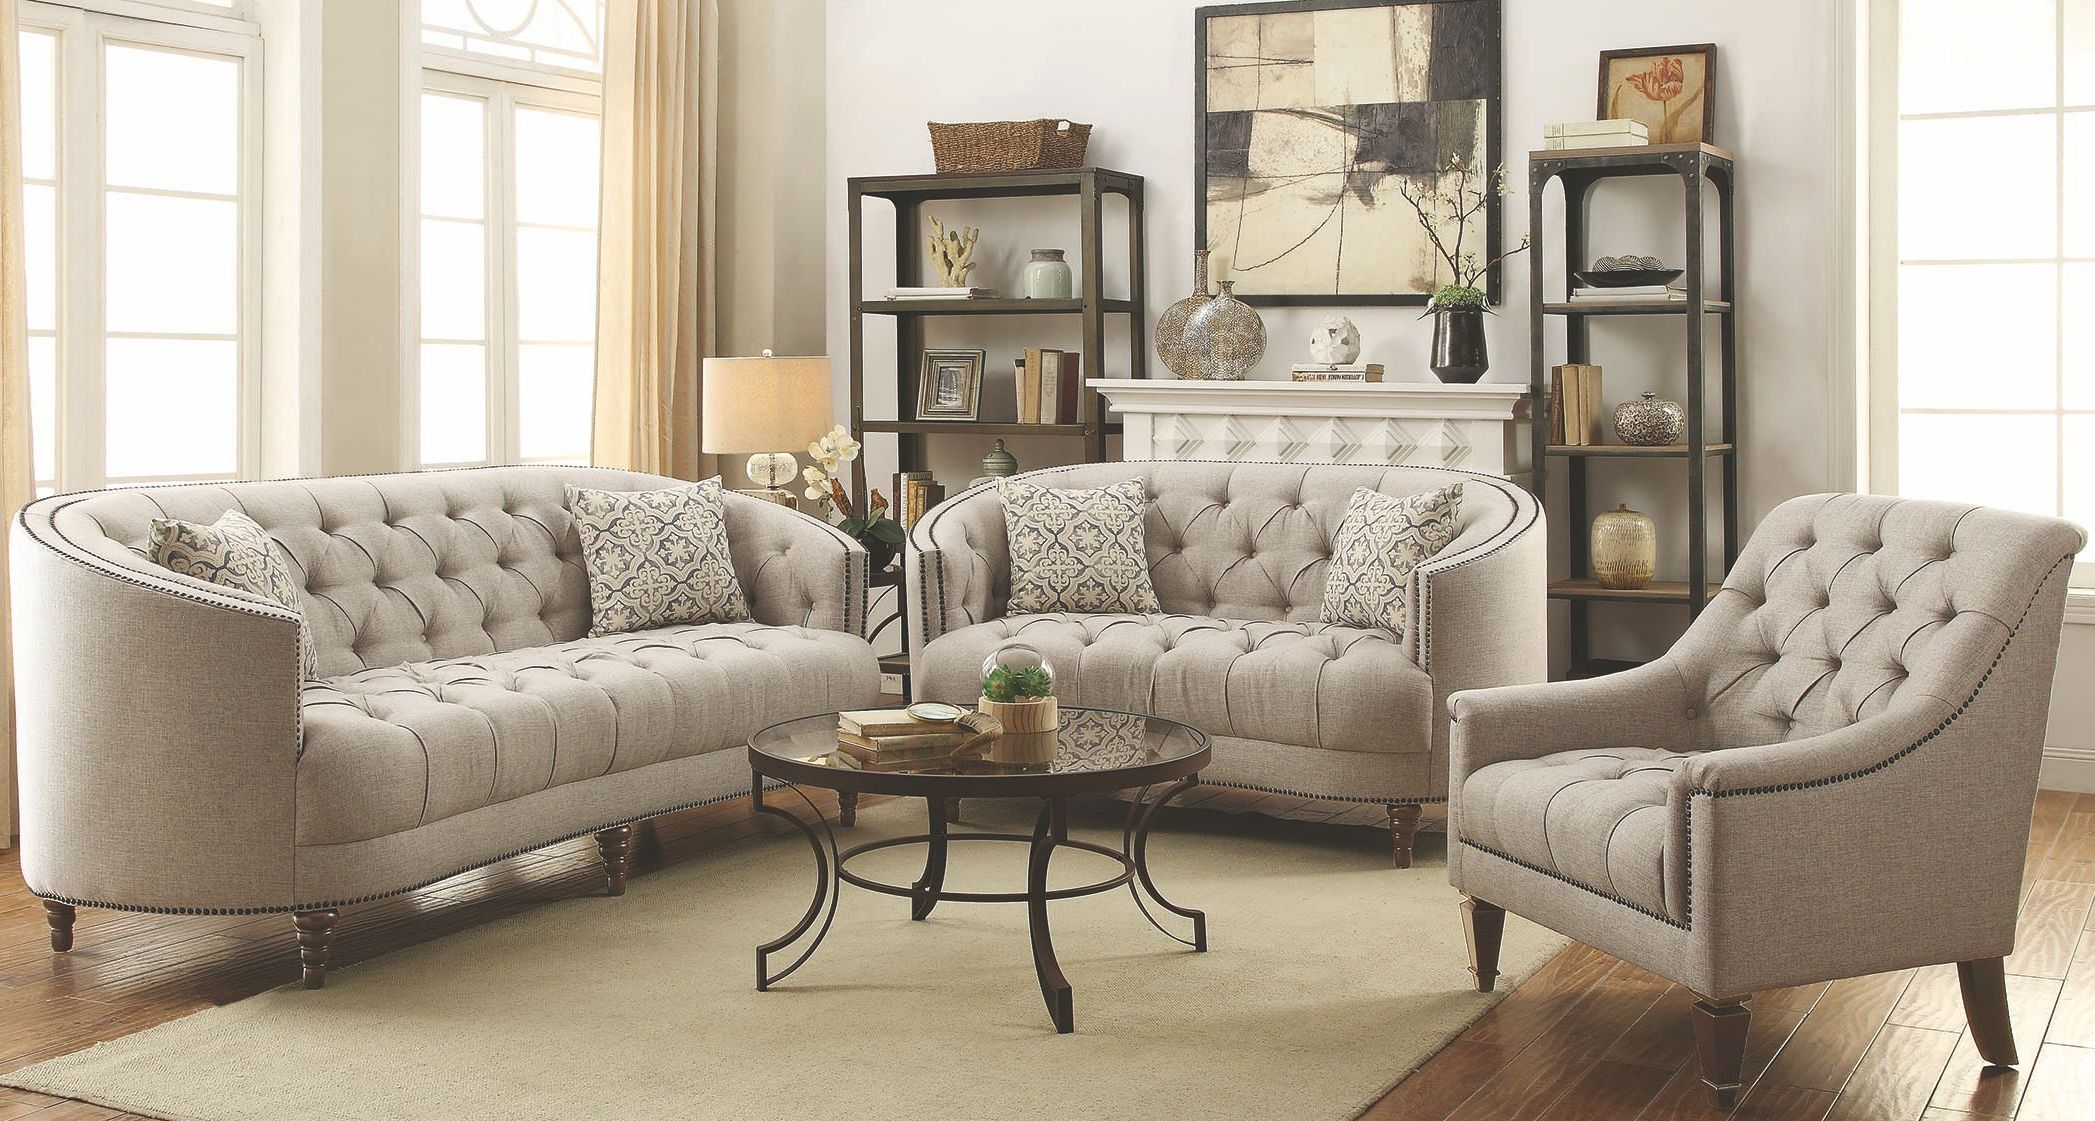 Avonlea Stone Grey Living Room Set - 1StopBedrooms.